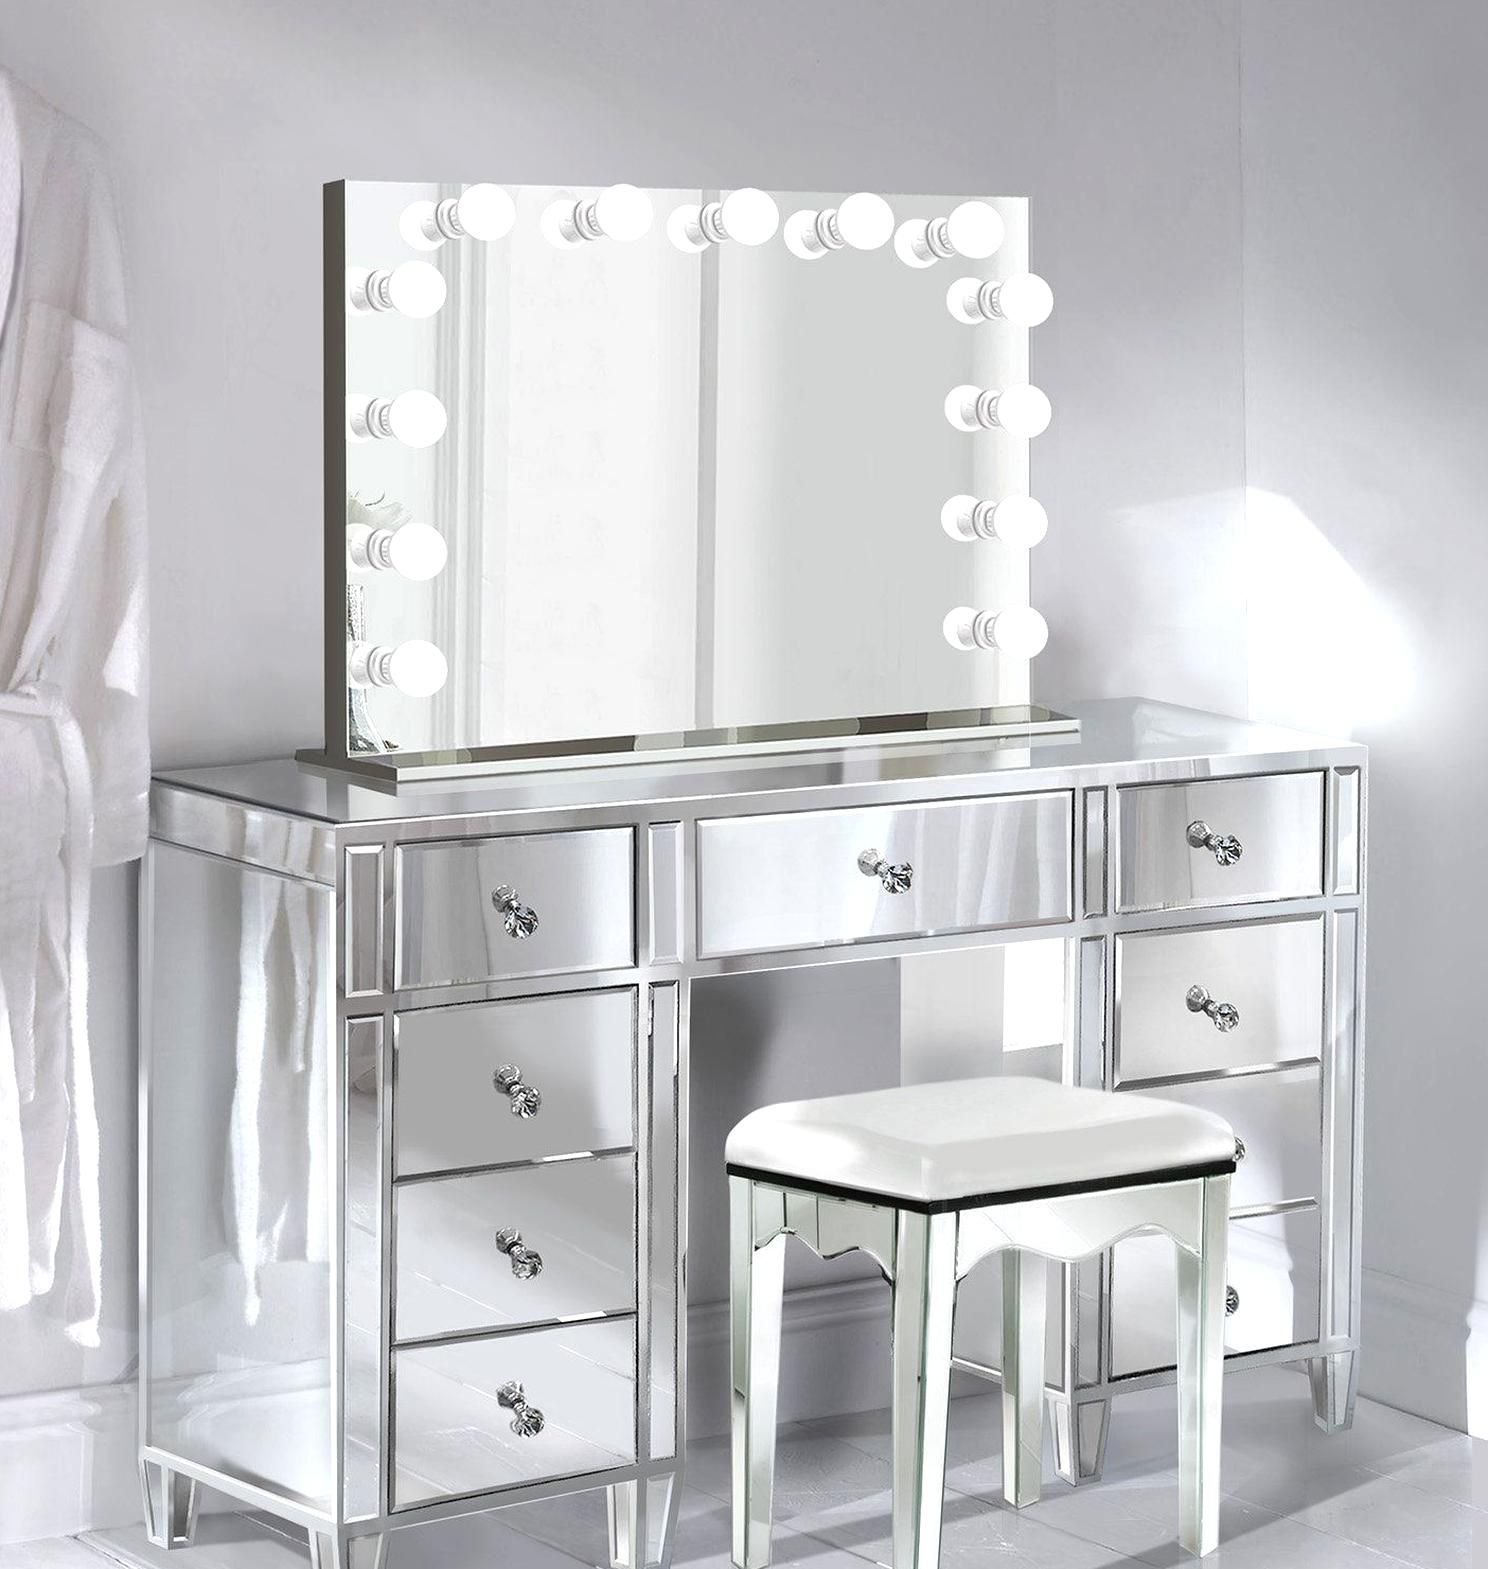 Glam Mirrored Makeup Vanity Set Includes Glam Hollywood